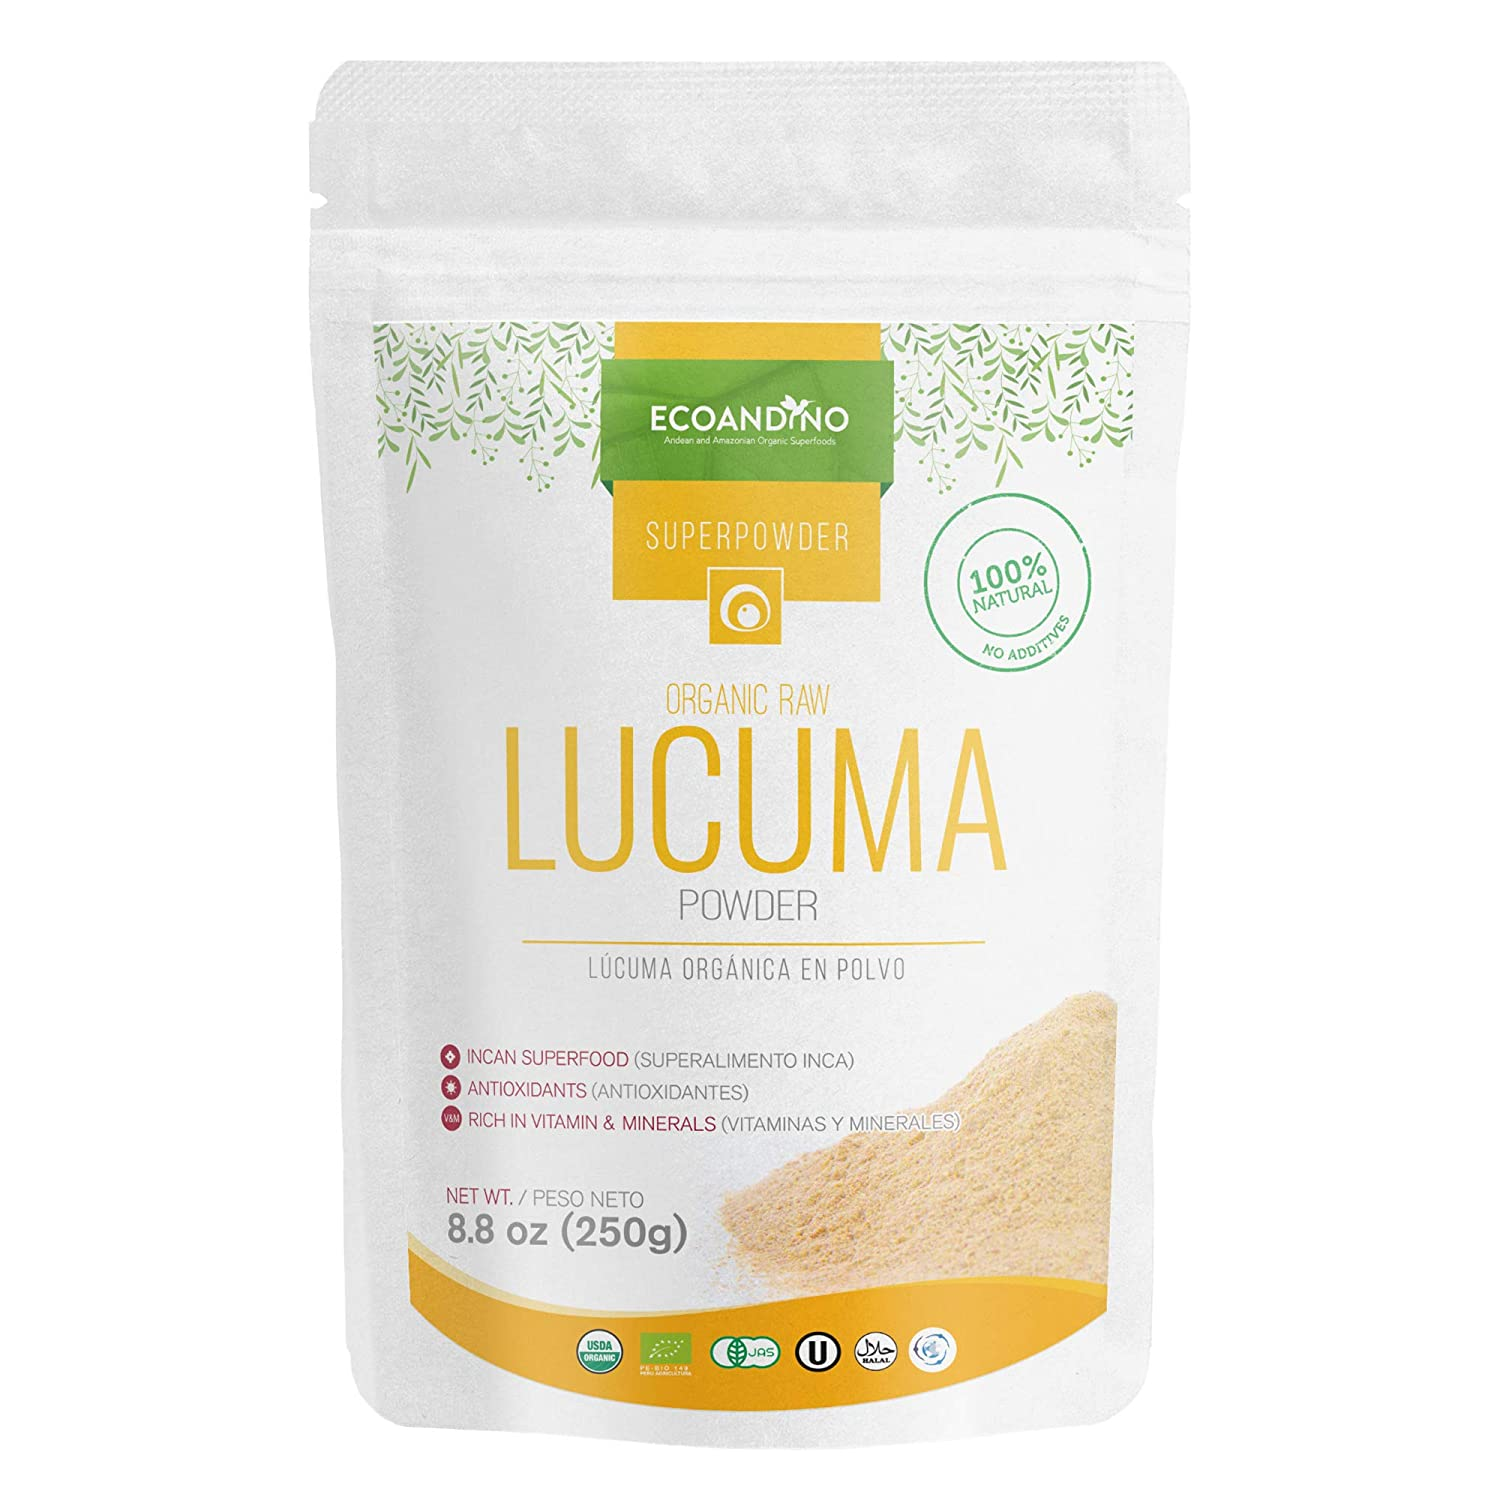 Ecoandino Organic Raw Lucuma Powder 7.05 oz (200 grams) Resealable Doypack bag (Pack of 1): Amazon.com: Grocery & Gourmet Food